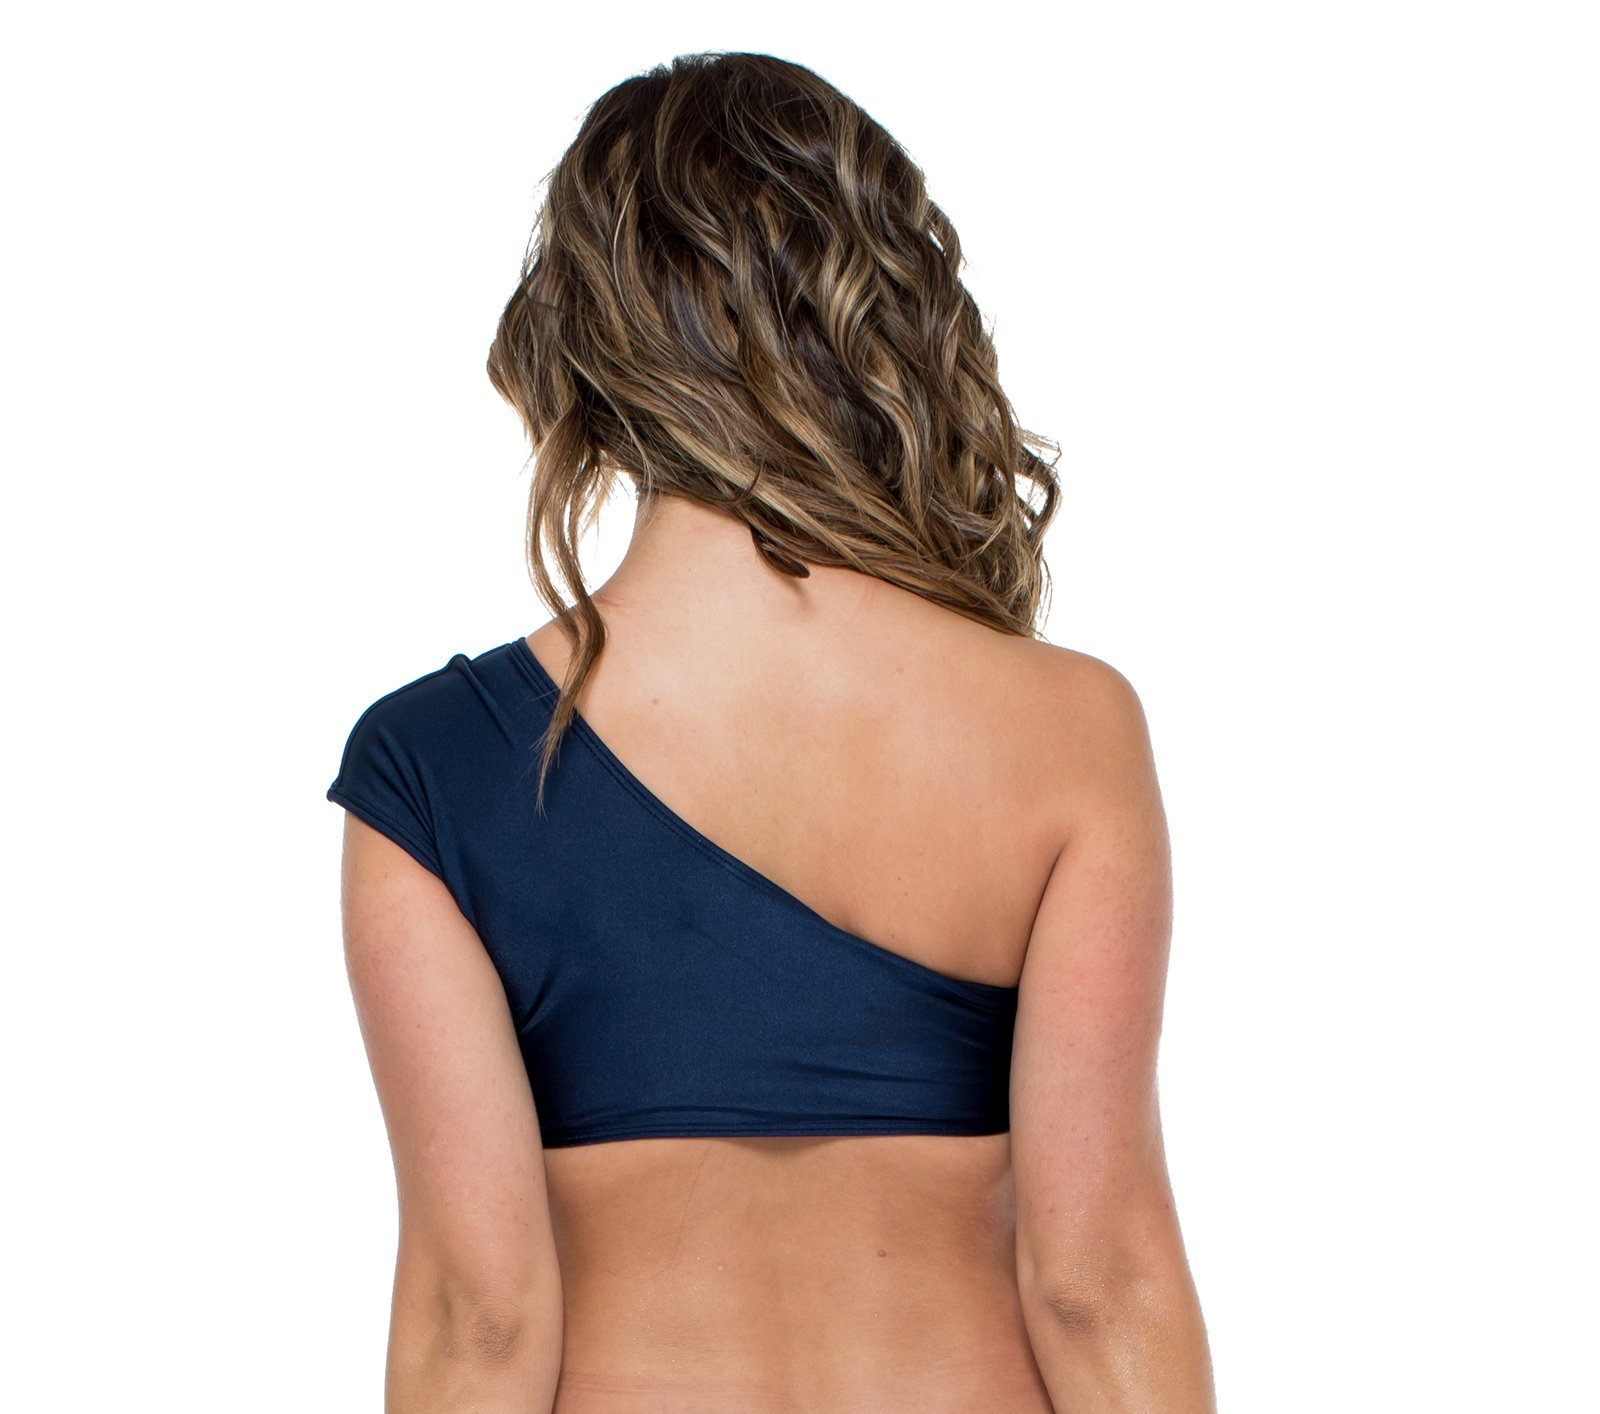 5f167451ece ... Navy blue one shoulder crop top with side lacing - TOP MAMBO SONIA  MARINHO ...